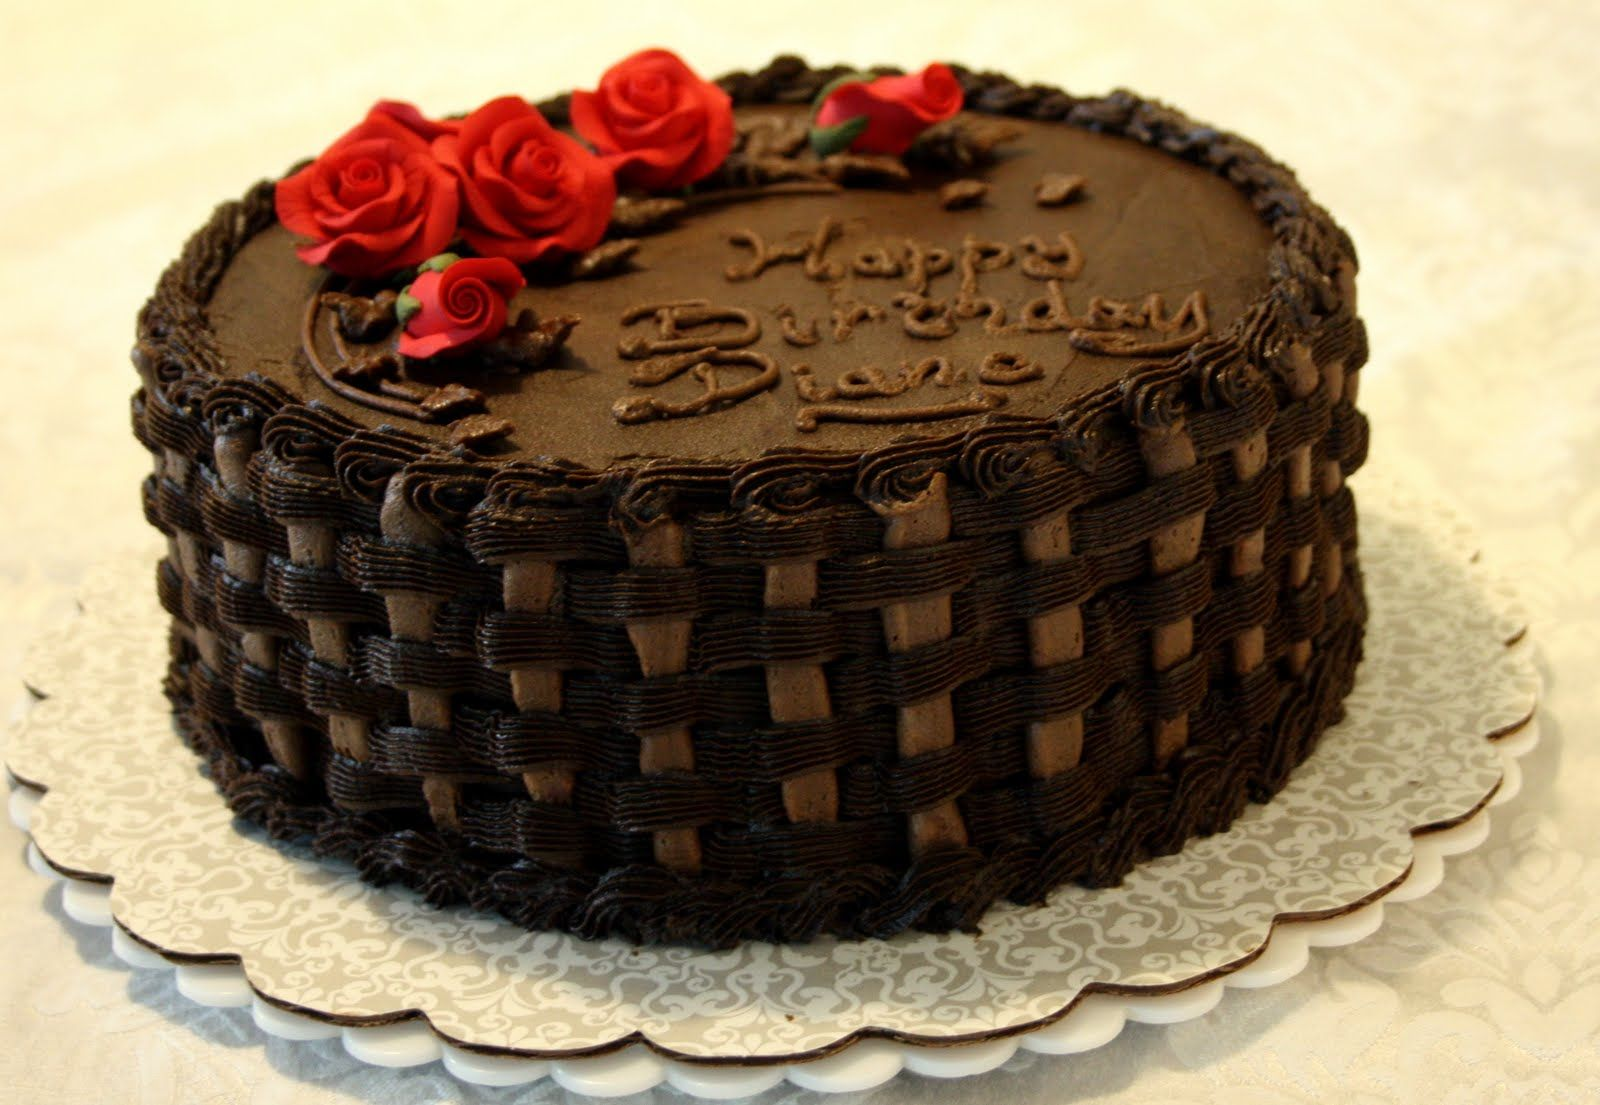 Chocolate cake with red roses | Happy birthday | Pinterest ...